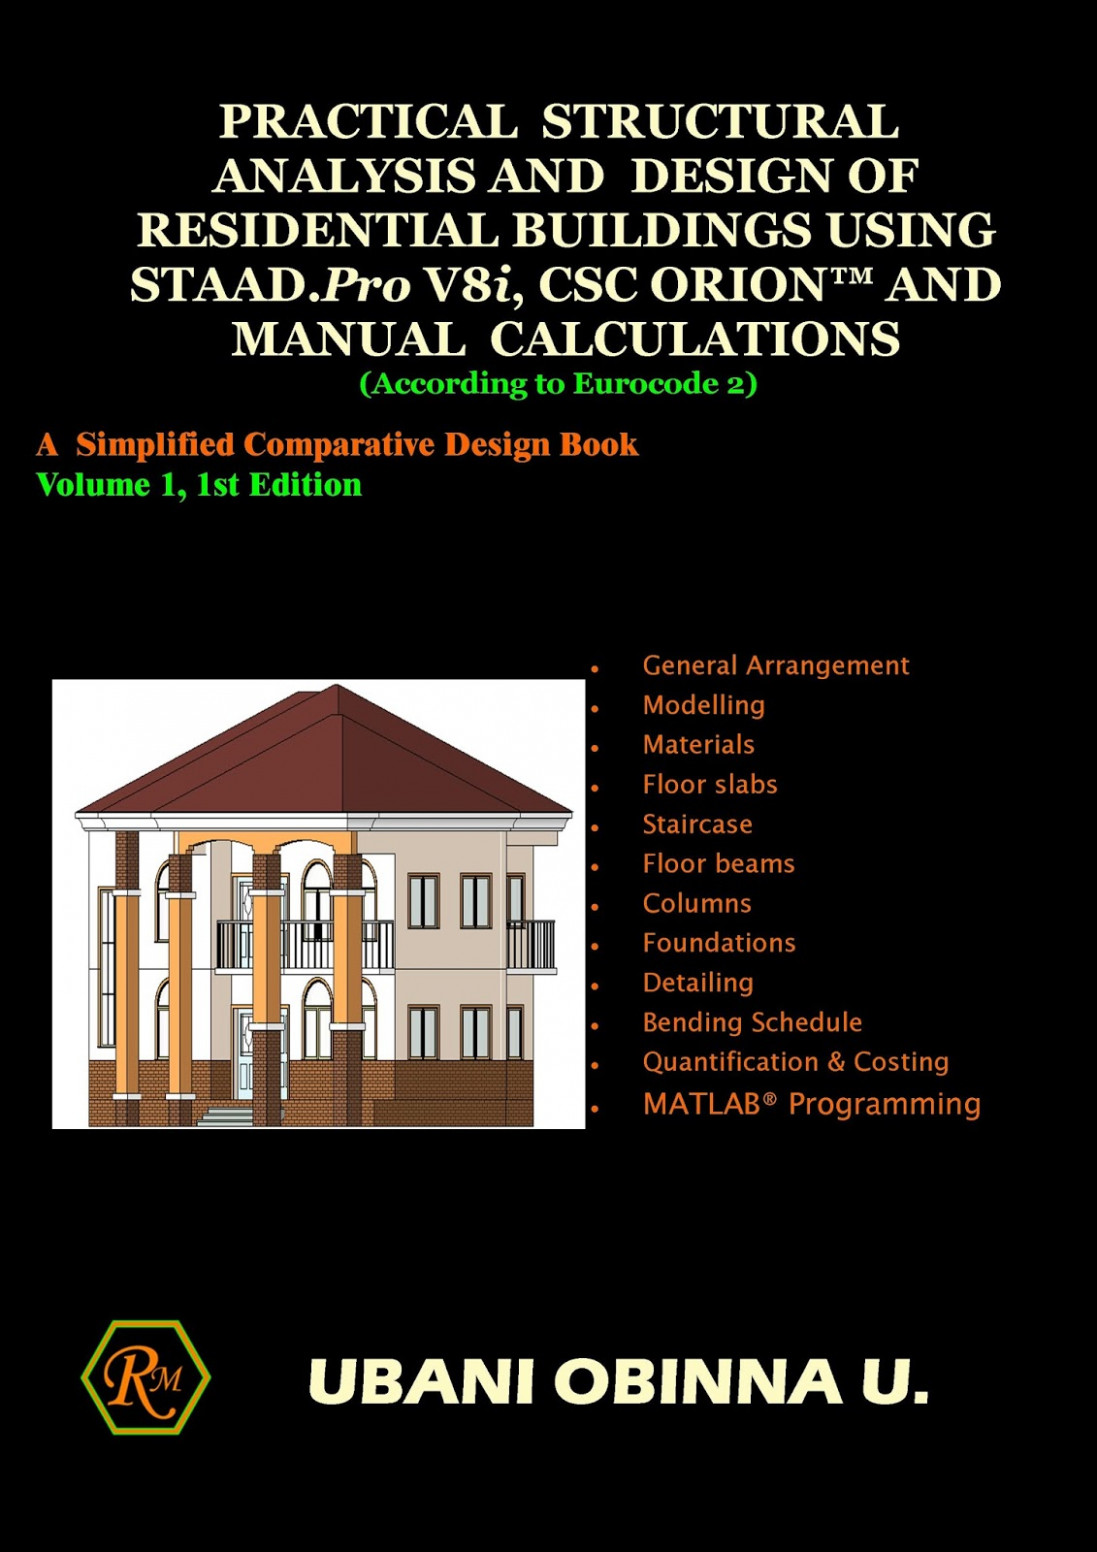 ABOUT THE BOOK (Structural Analysis and Design of ...